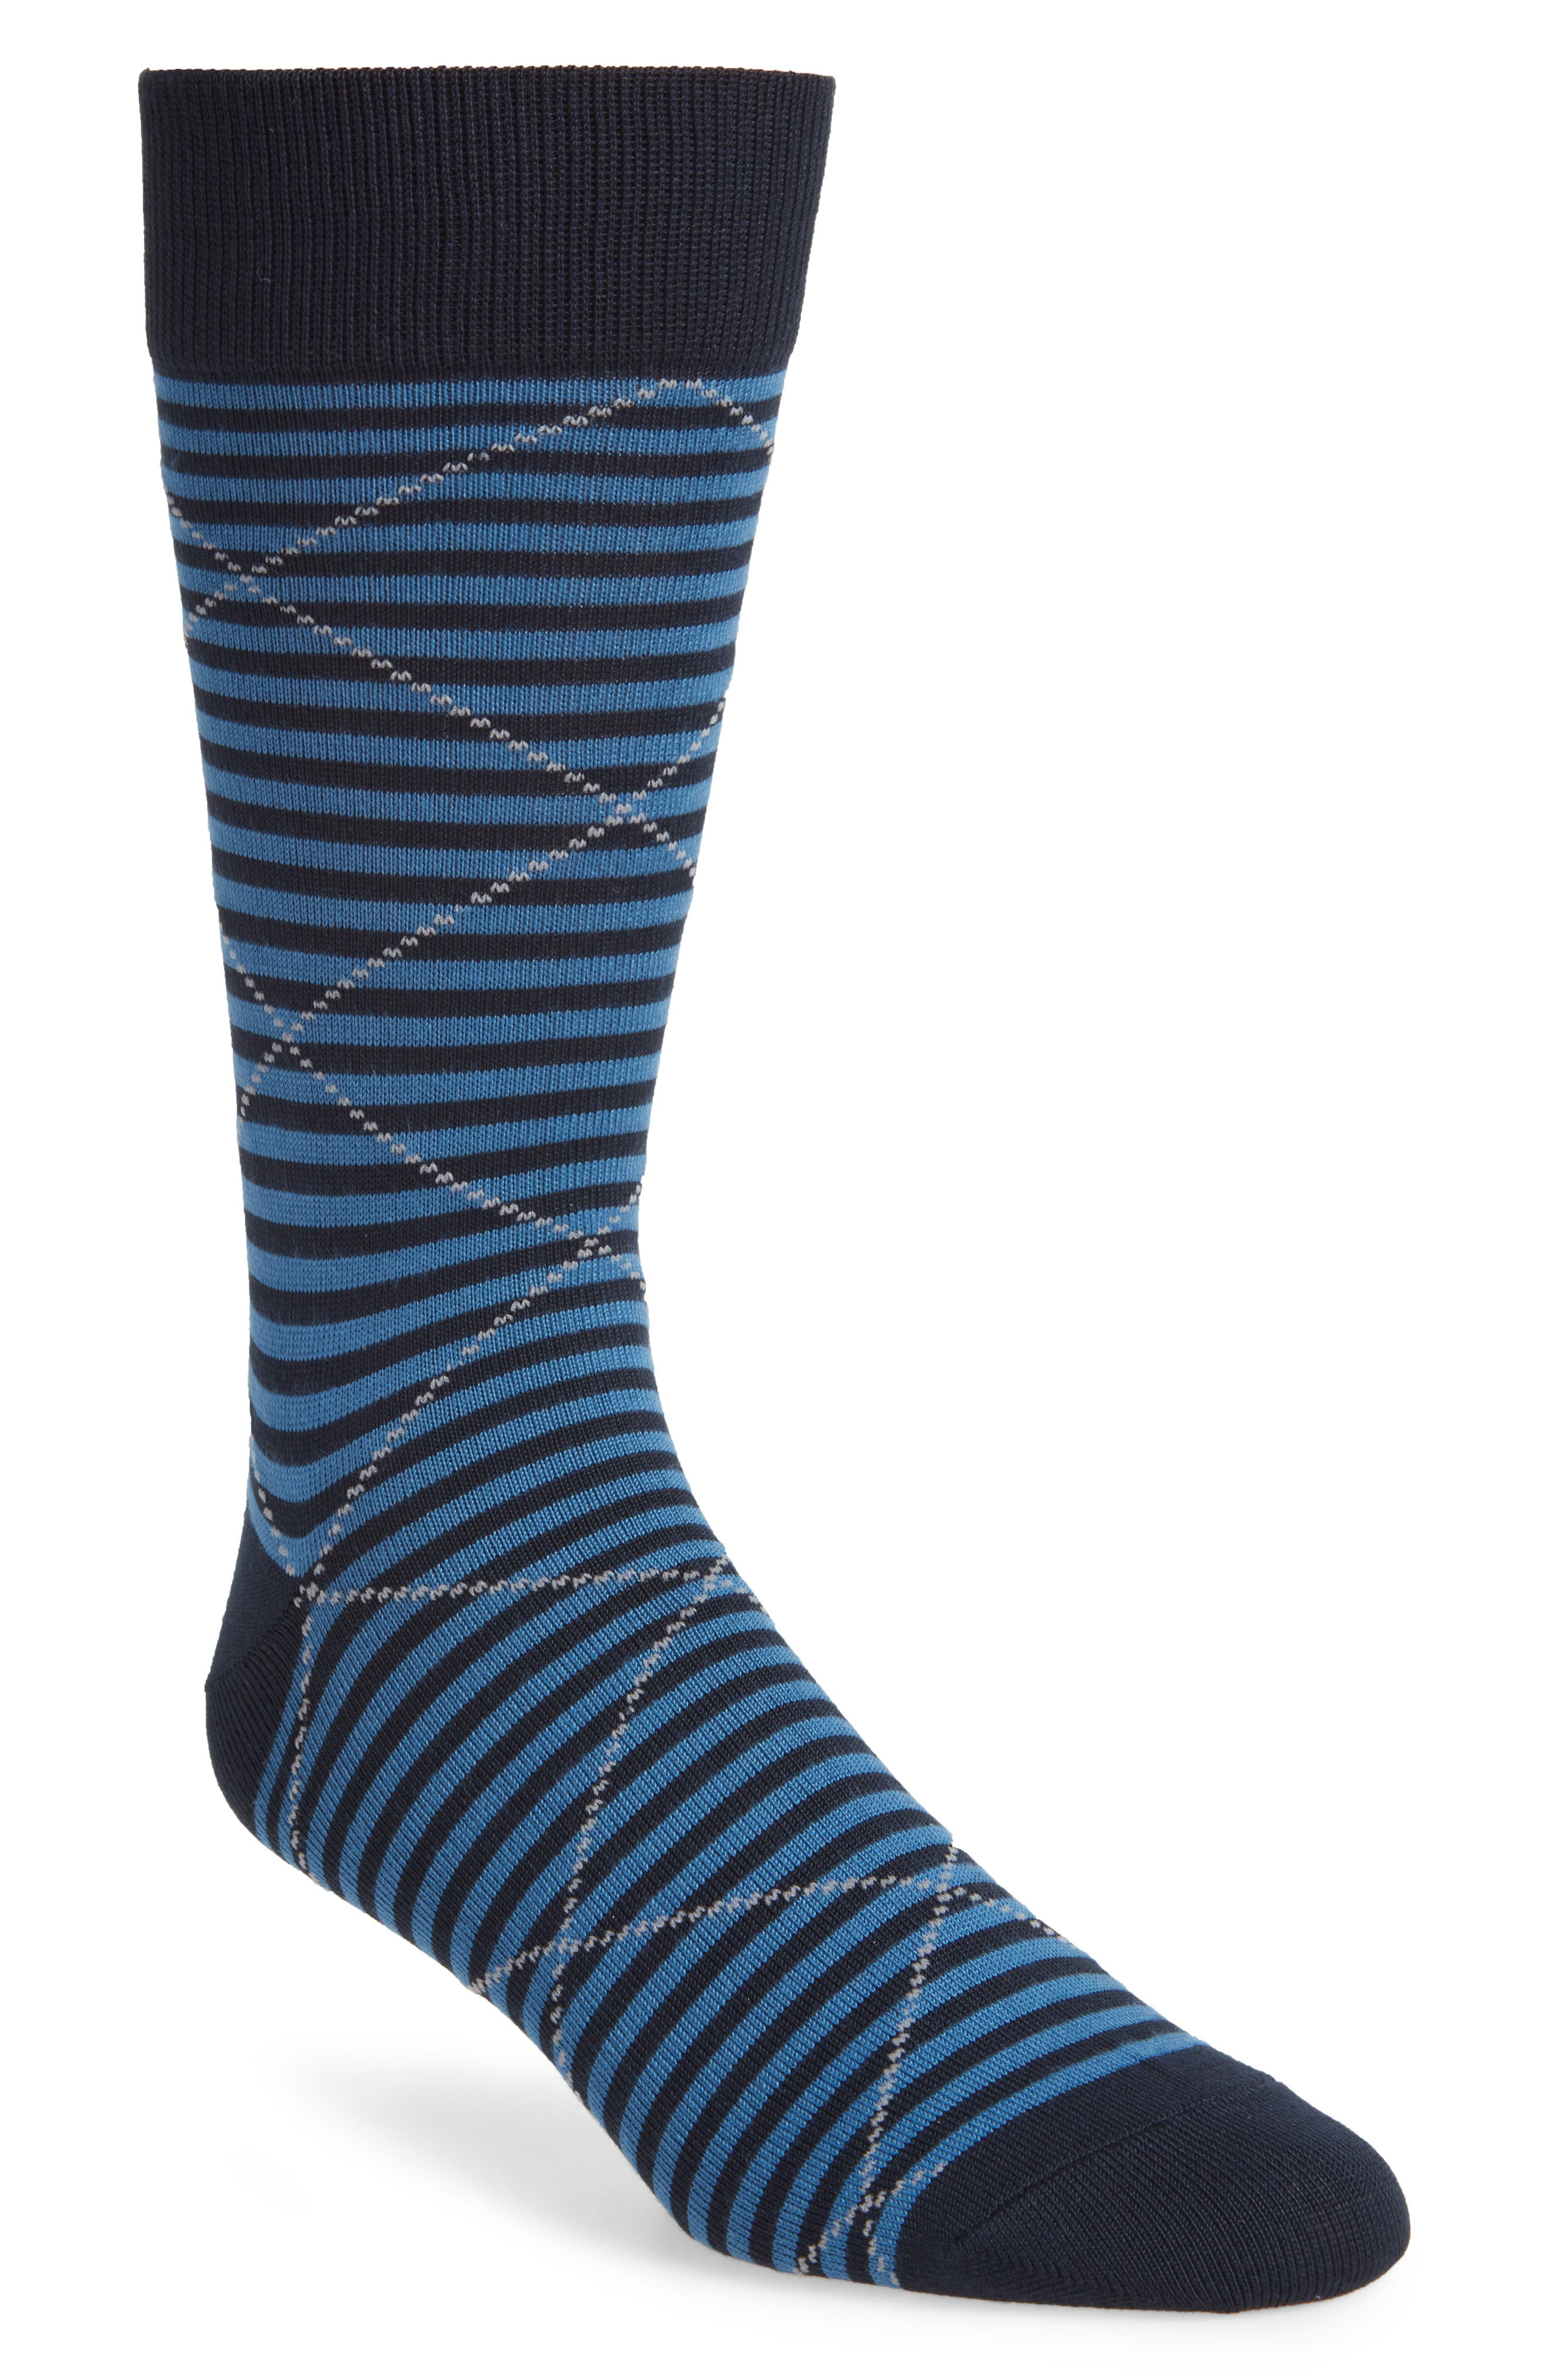 Ringed strips and bright diamonds bring distinctive color and pattern to any ankles in dress socks made with plenty of stretch and noticeable softness. Style Name: Nordstrom Men\\\'s Shop Ultrasoft Microstripe Dress Socks. Style Number: 5937878. Available in stores.